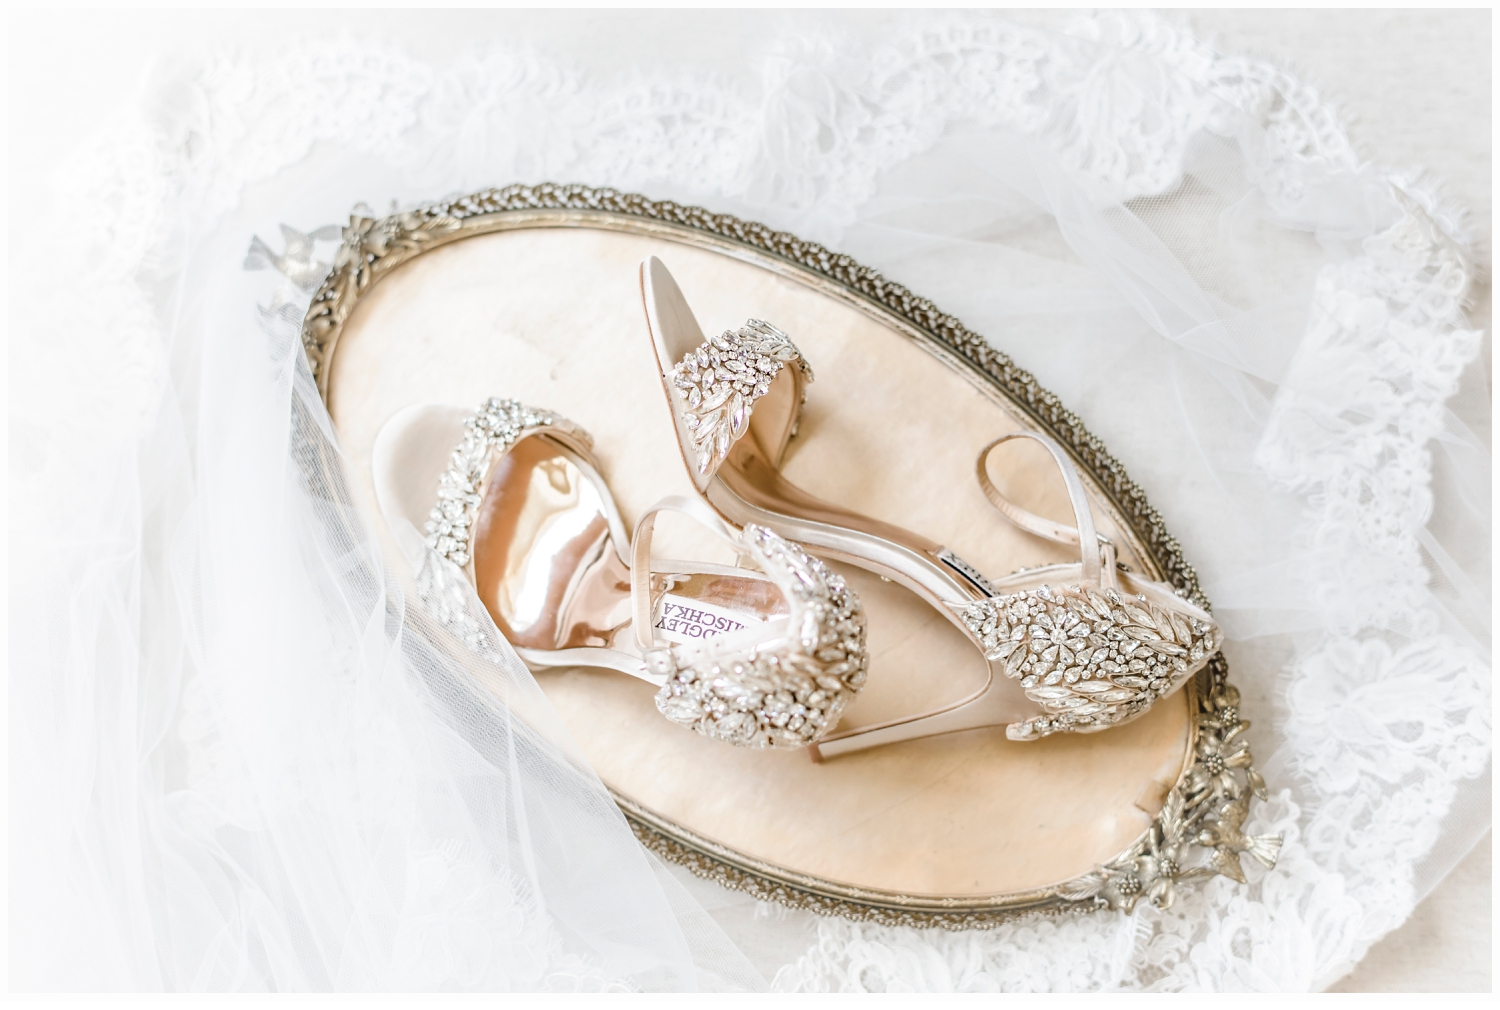 pretty wedding shoes on a gold tray